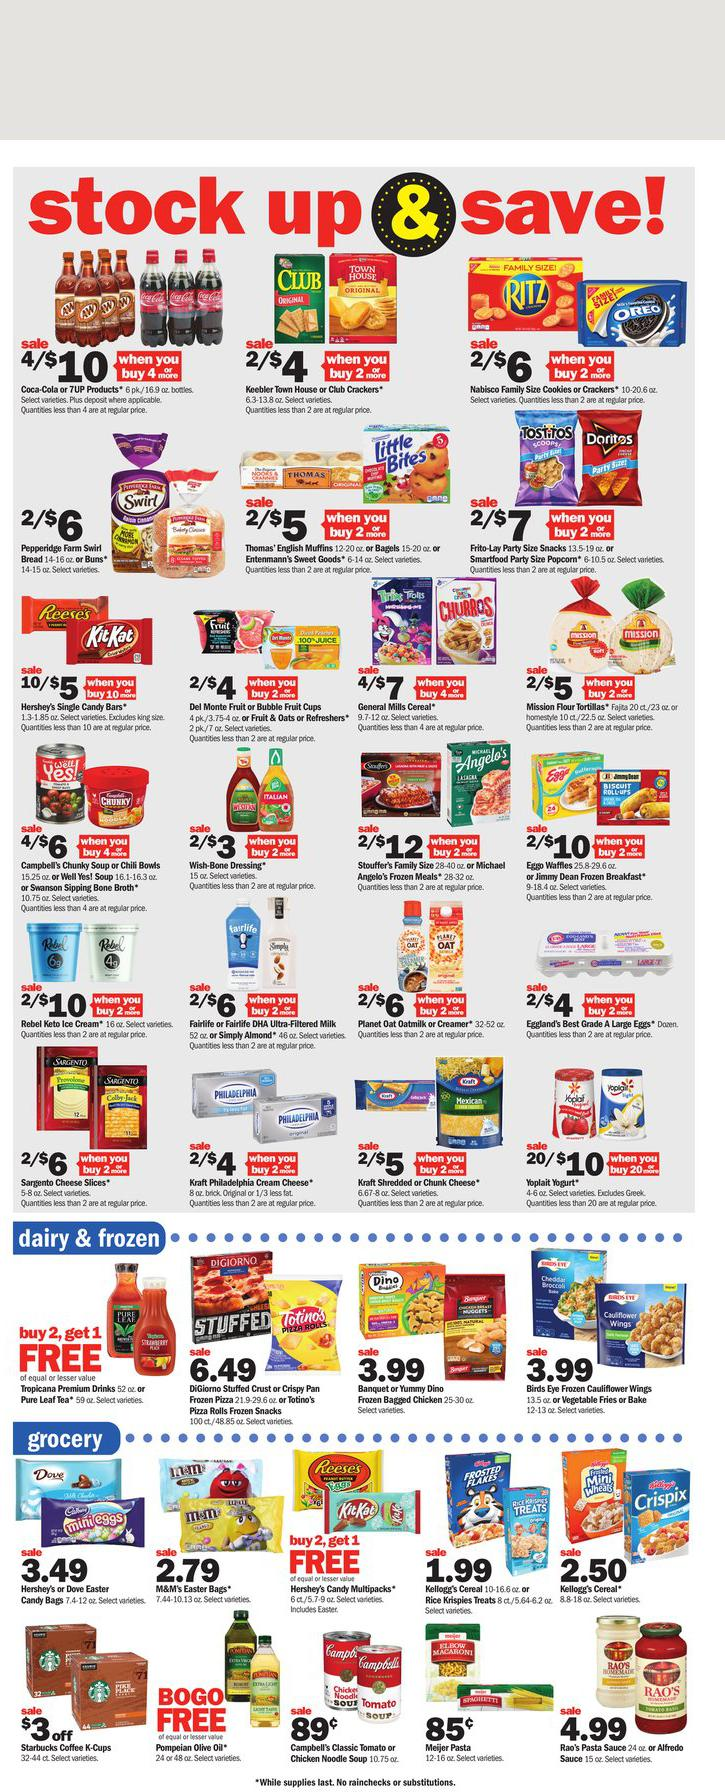 21.02.2021 Meijer ad 3. page